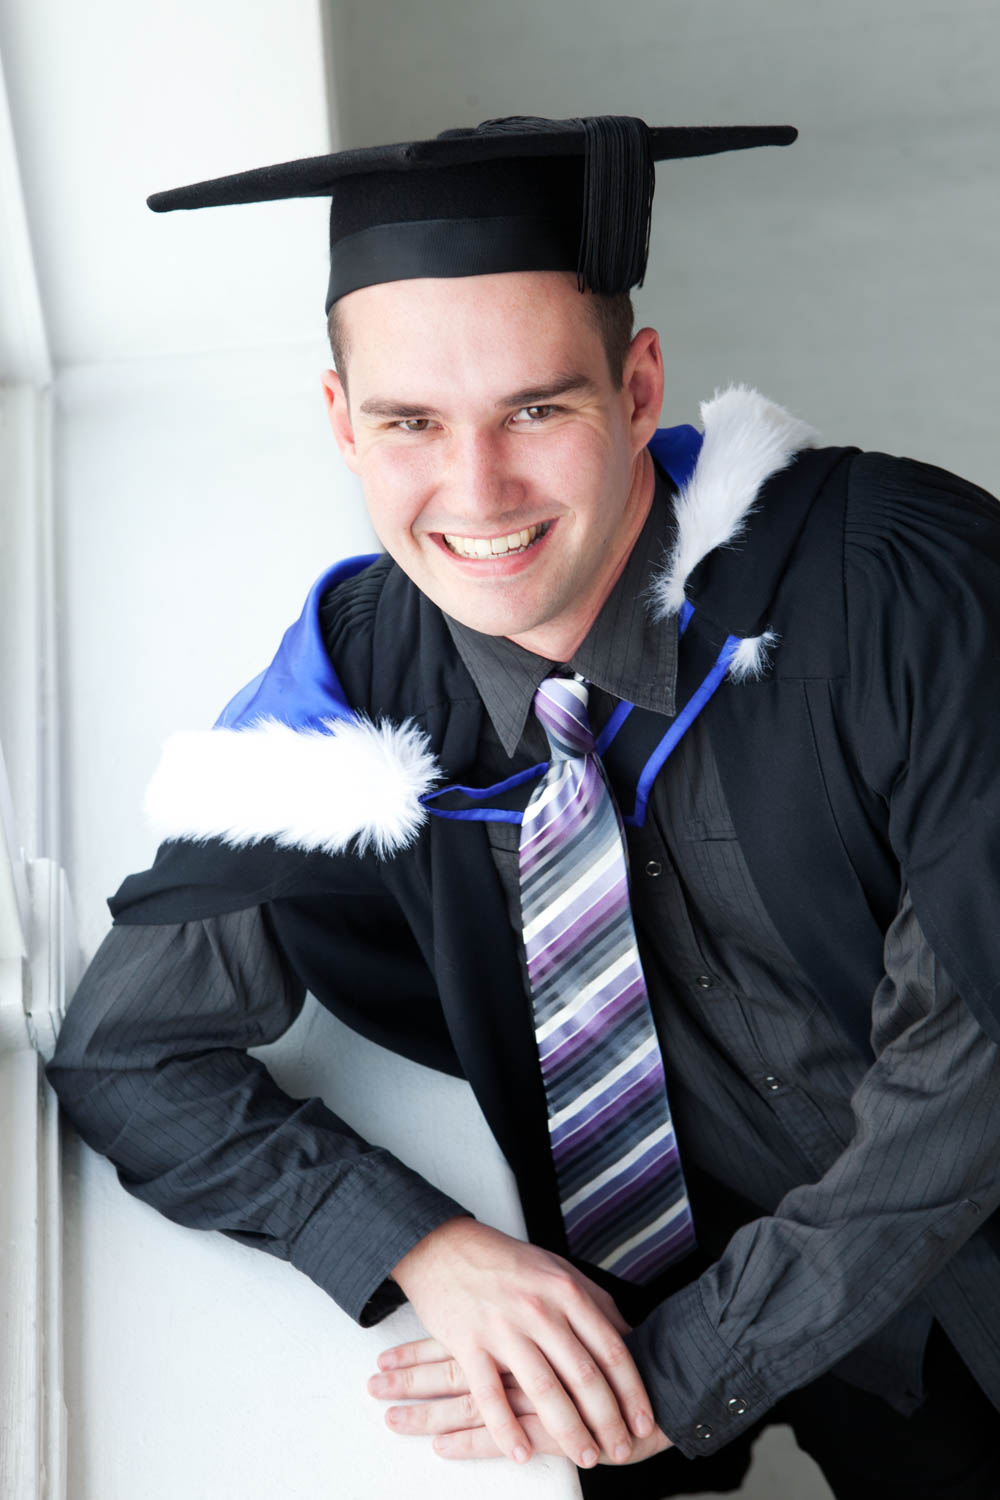 Graduation_Photographer_Auckland_17873_7075.jpg